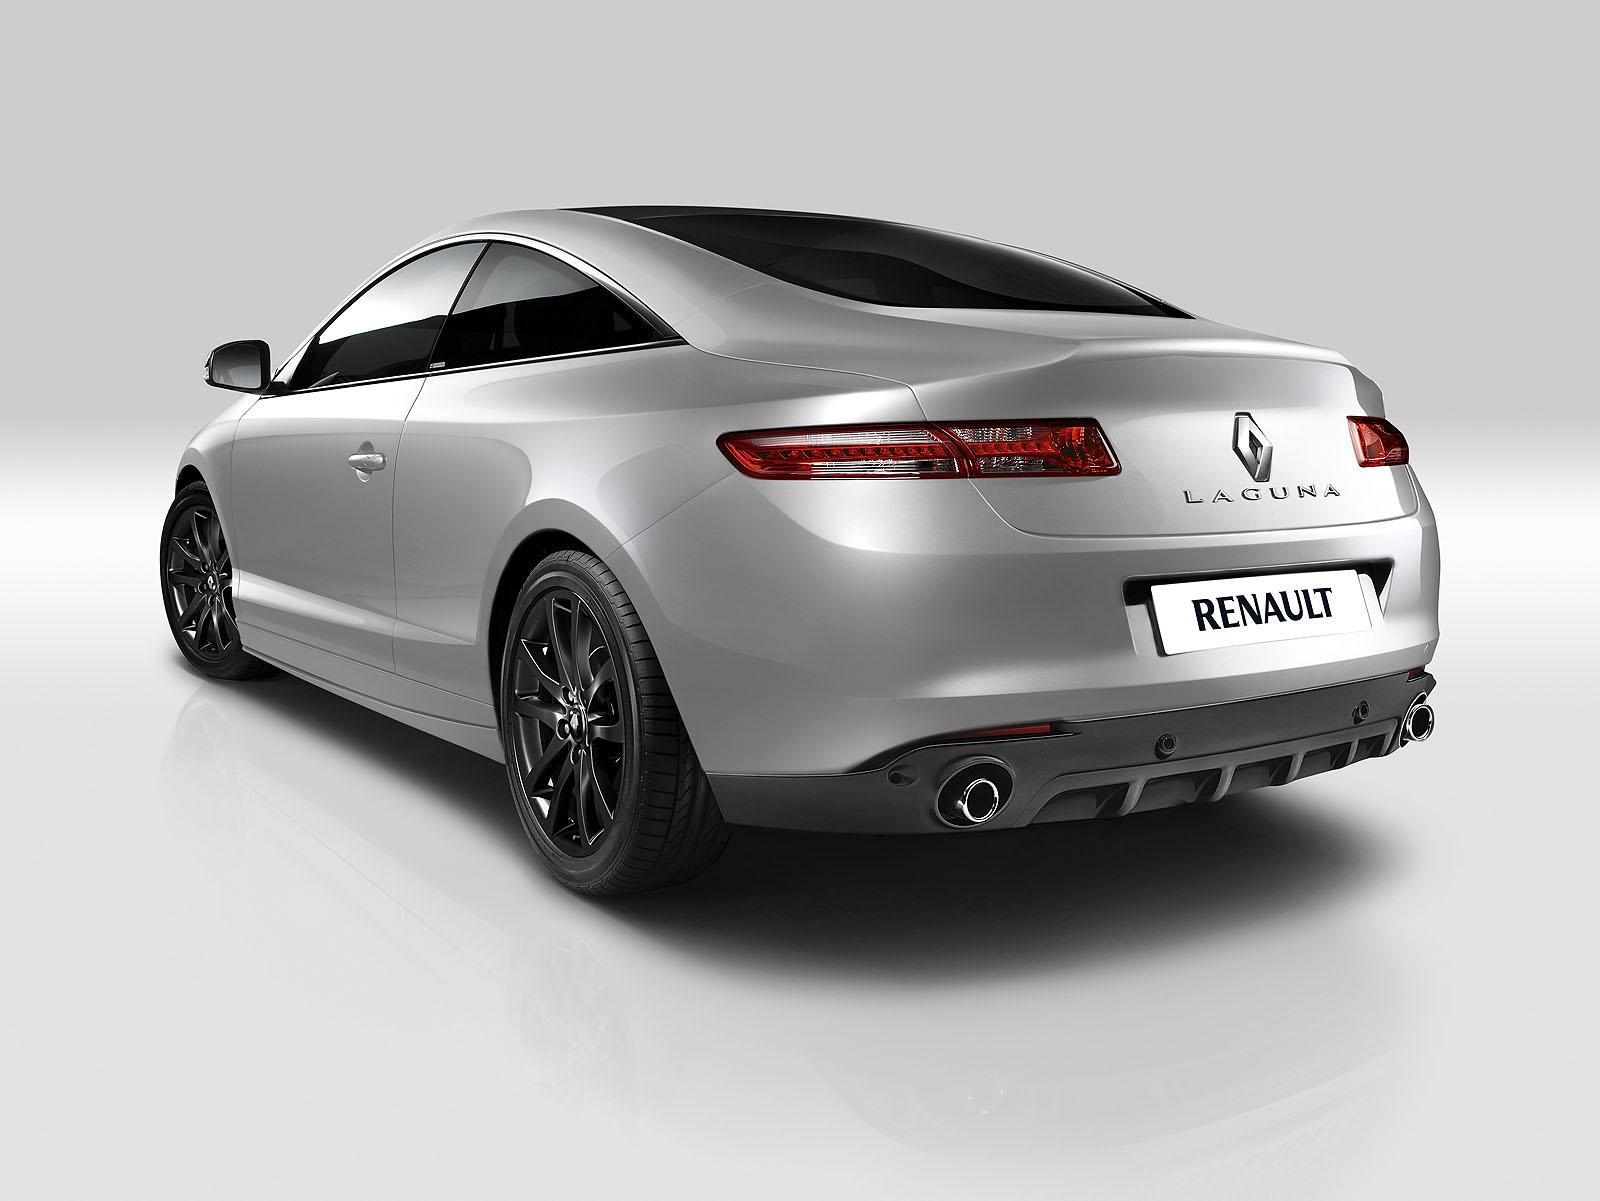 renault laguna iii coupe 2014 wallpaper